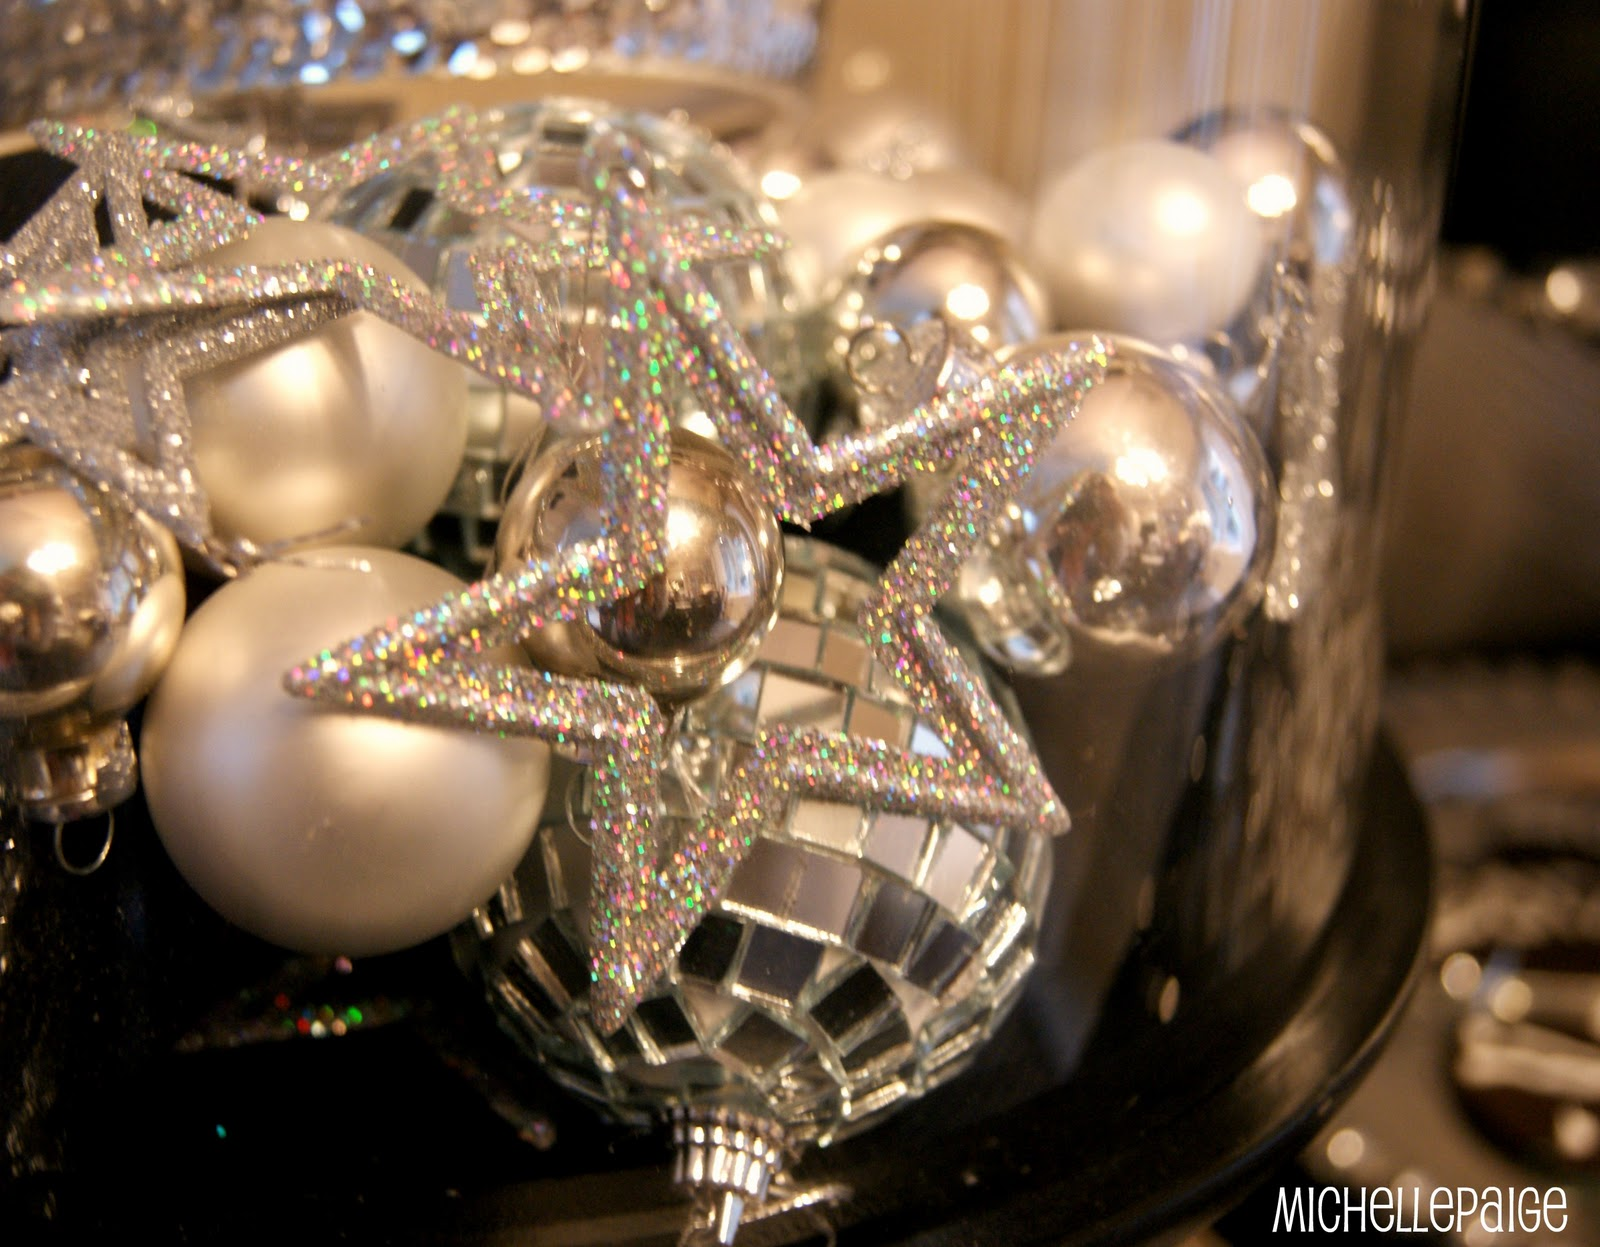 Michelle paige blogs new year 39 s eve party decor and food for Decoration new year